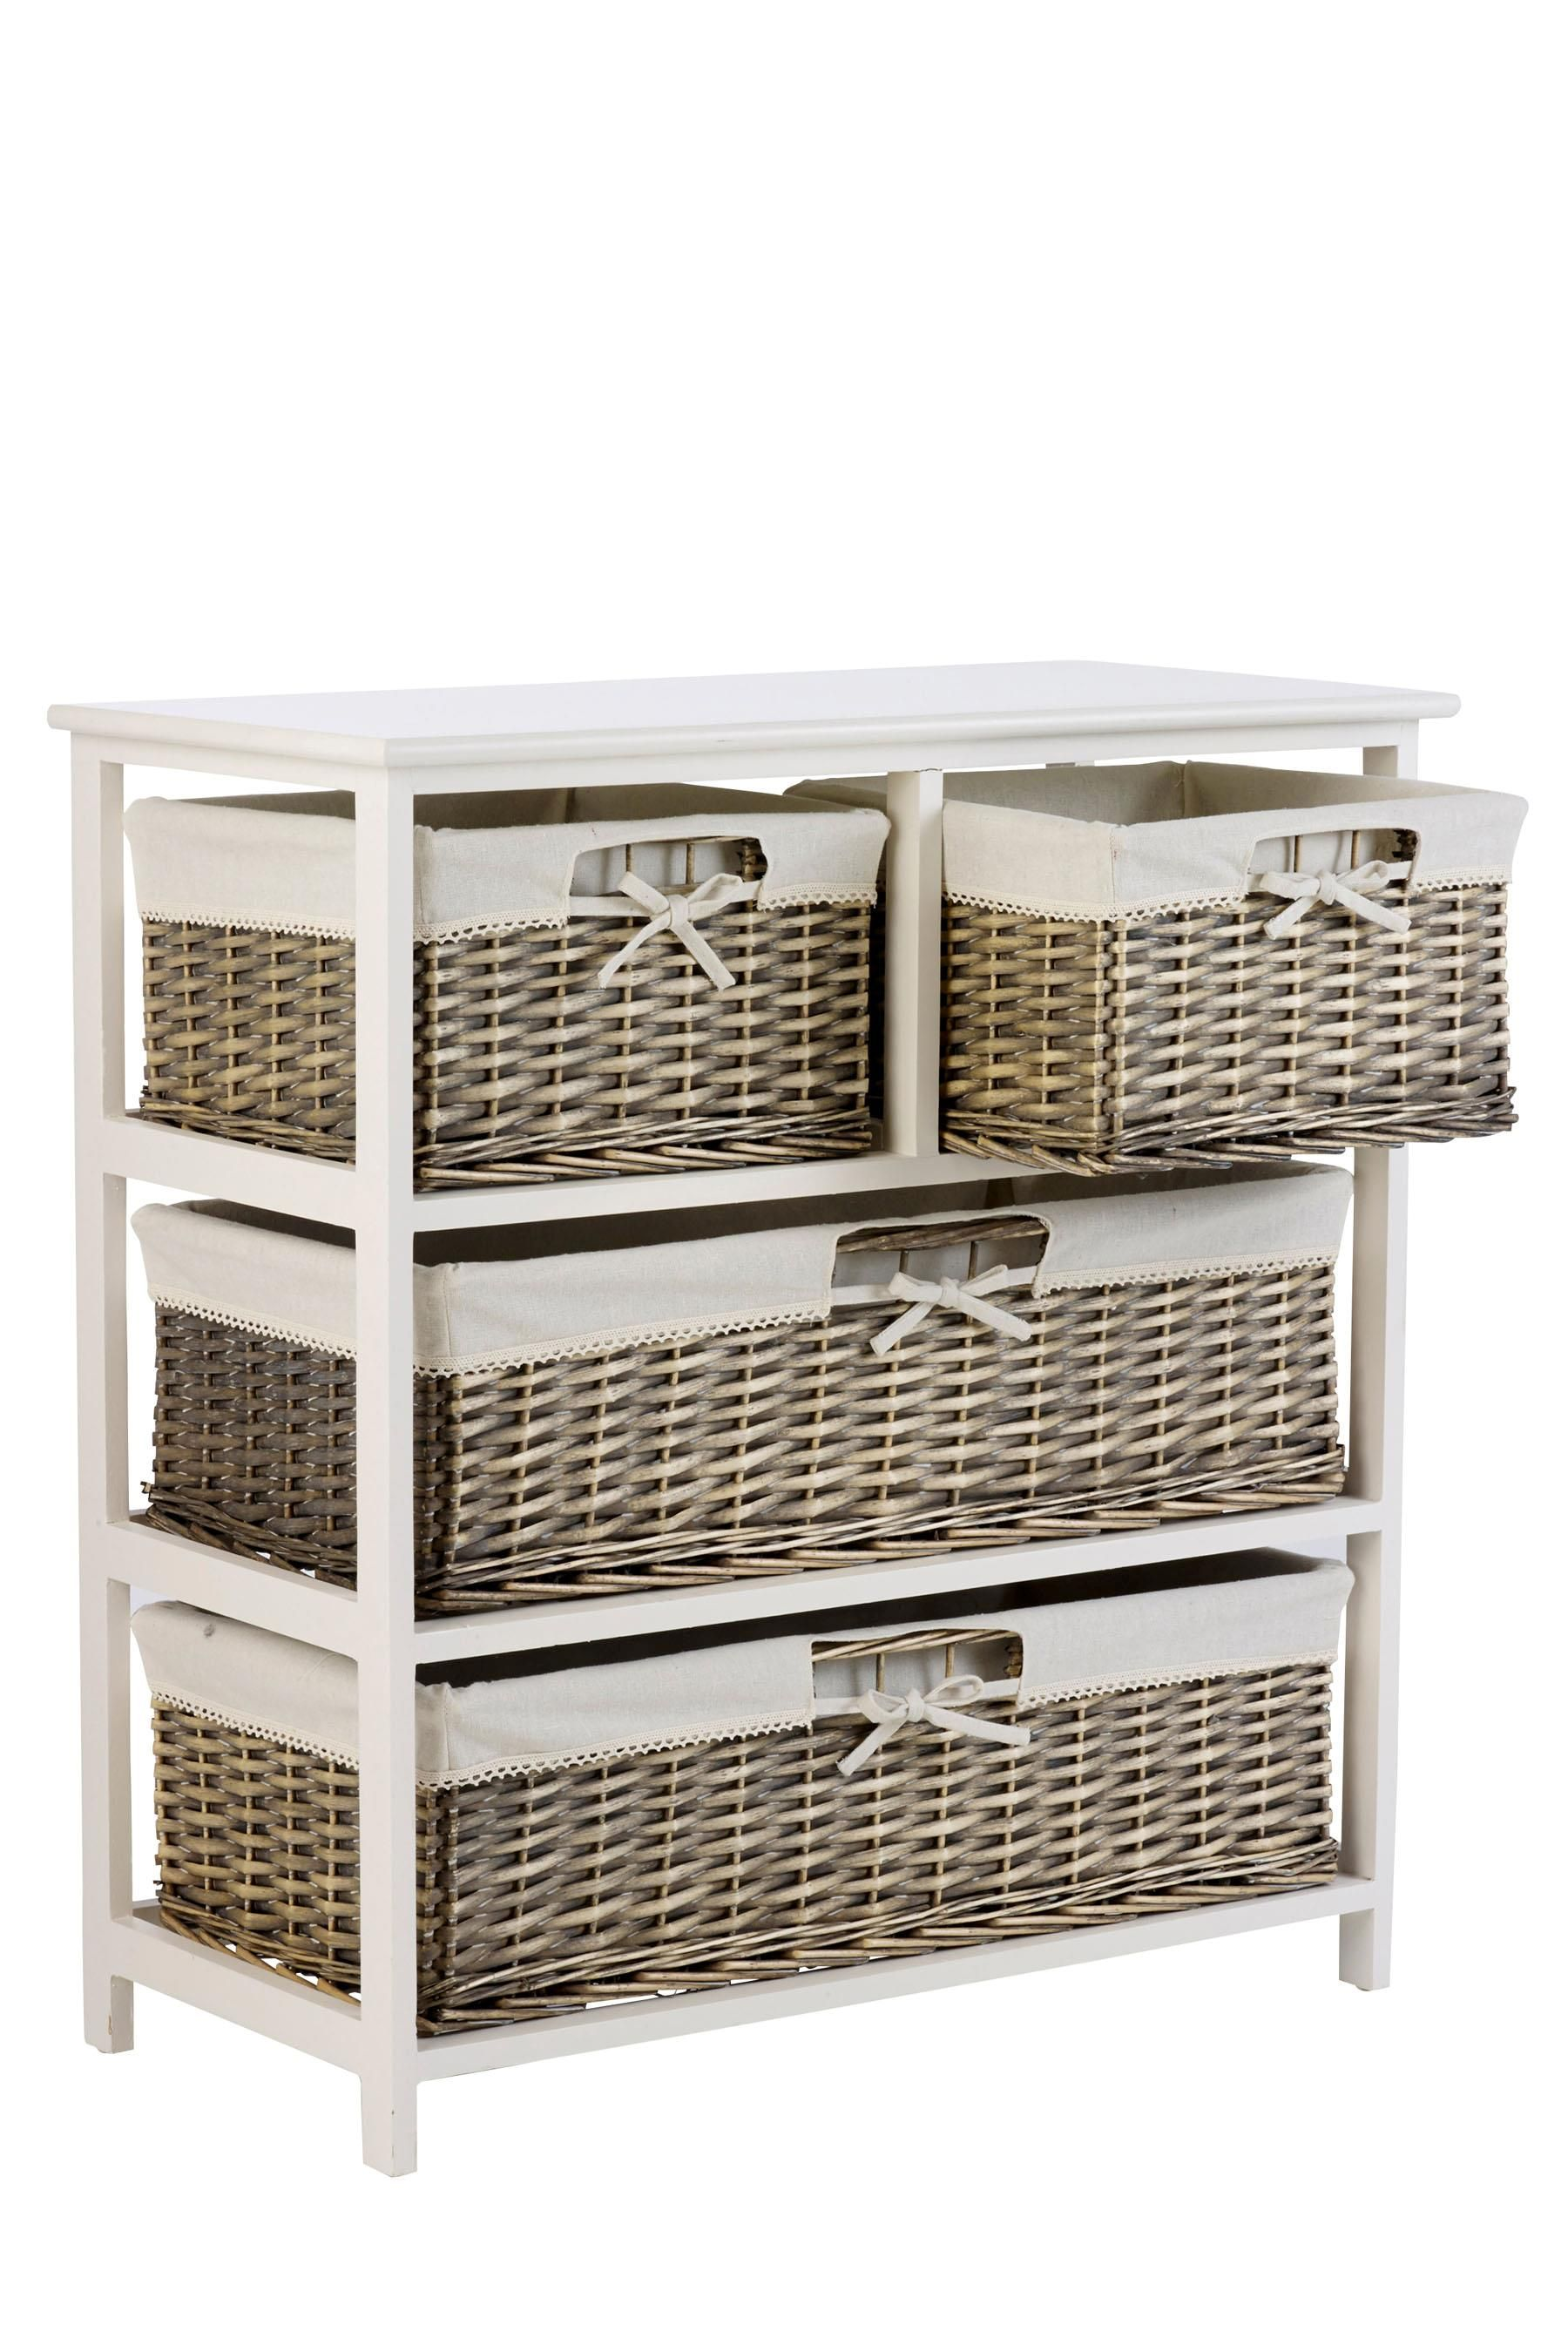 Buy Natural Wicker Wide 4 Drawers Storage Unit From The Next UK Online Shop